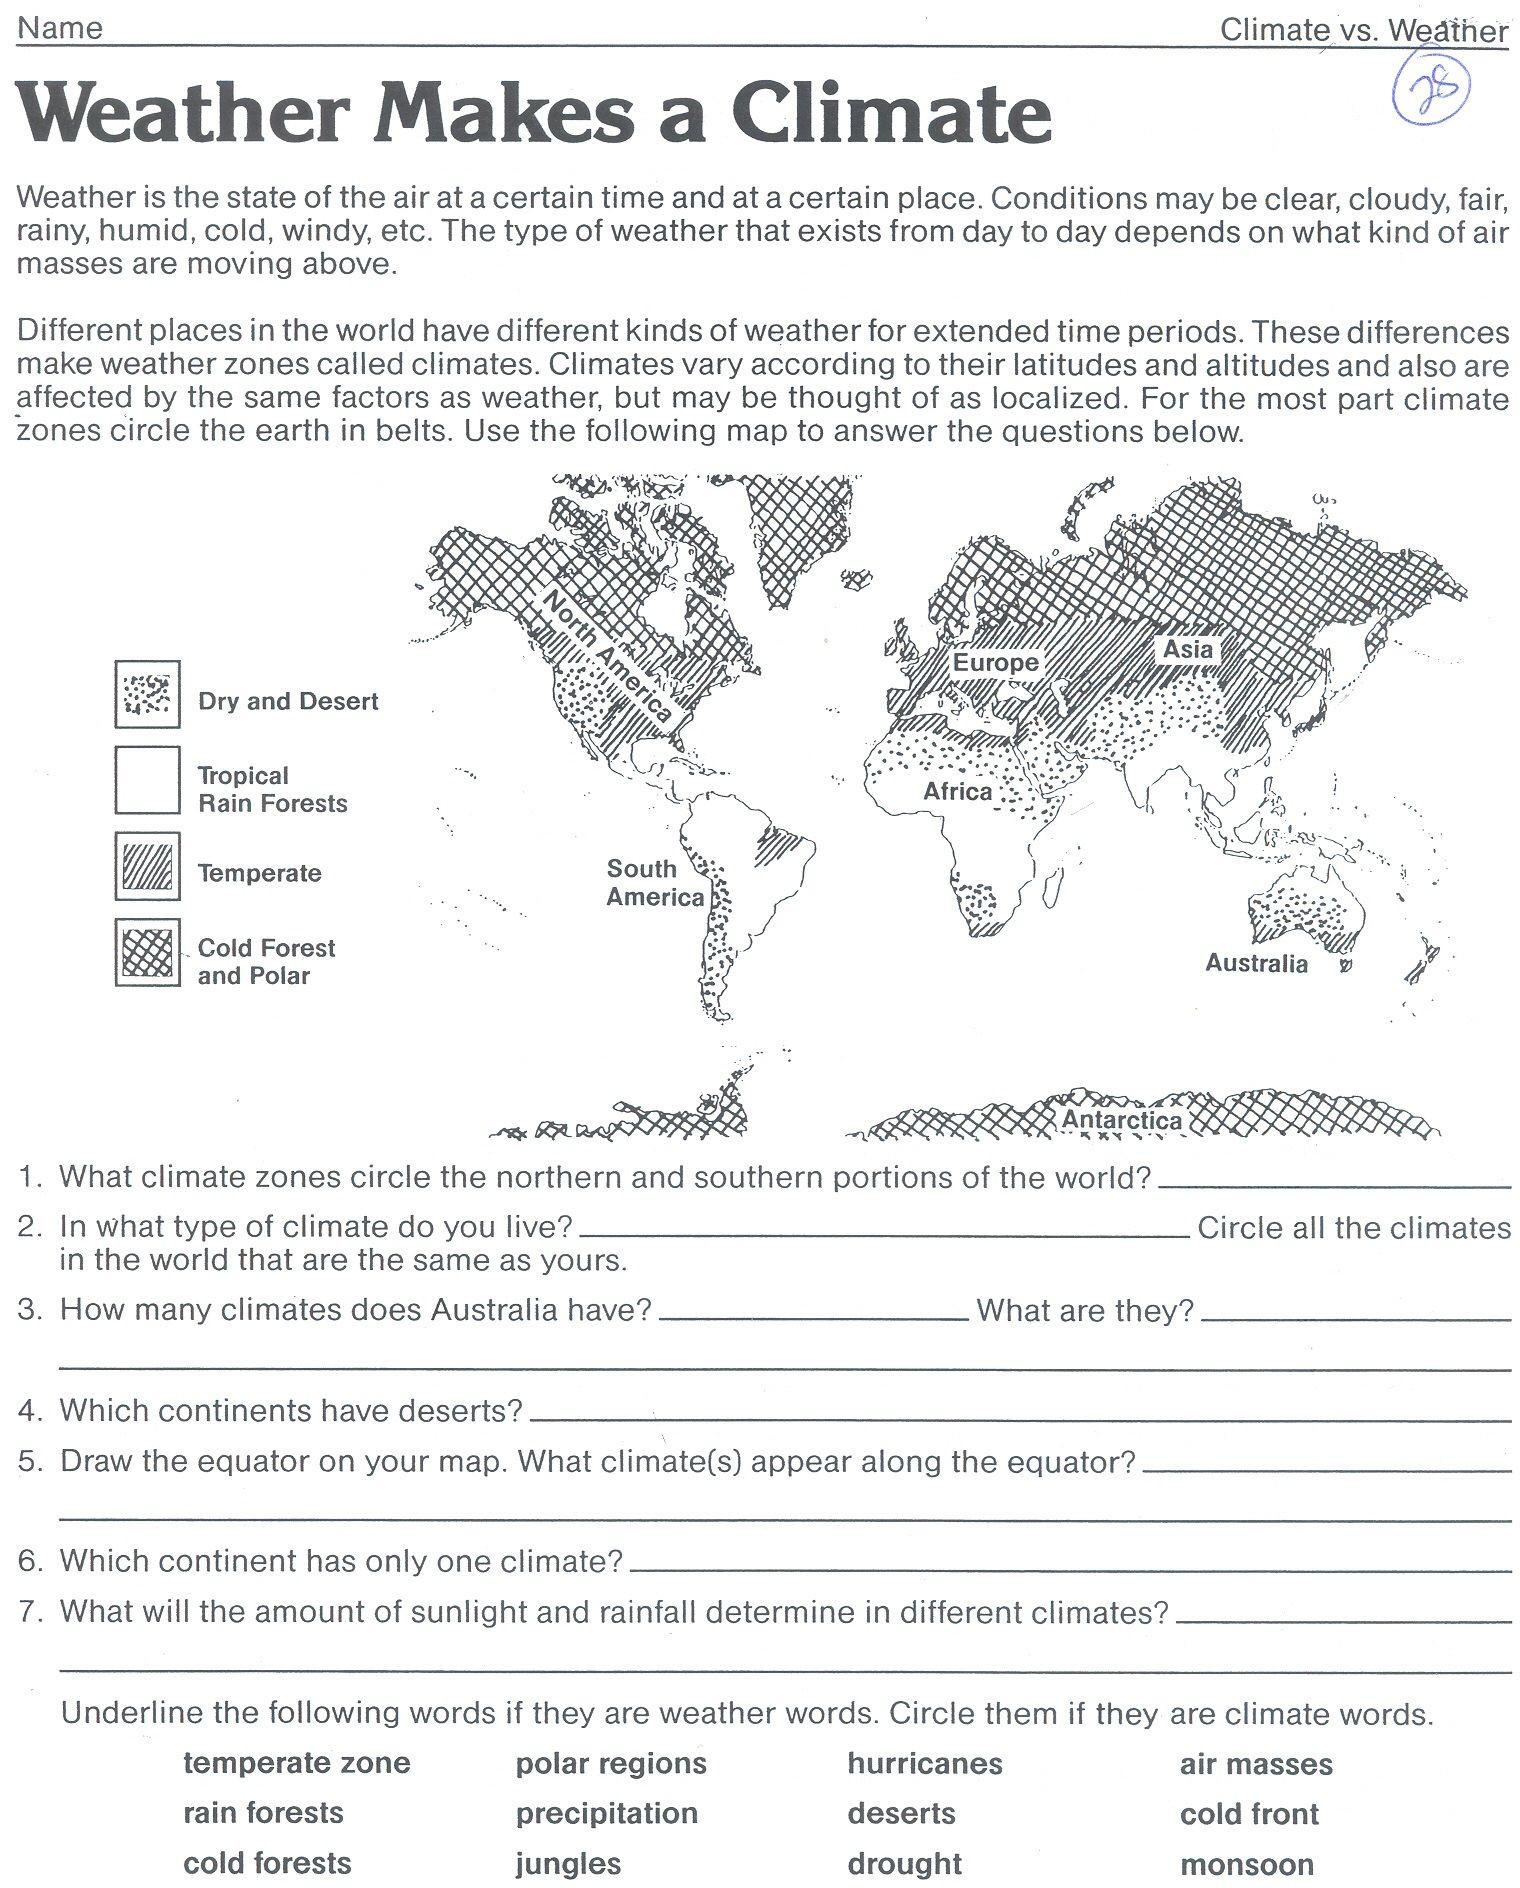 5th Grade Geography Worksheets Weather Makes A Climate Worksheet